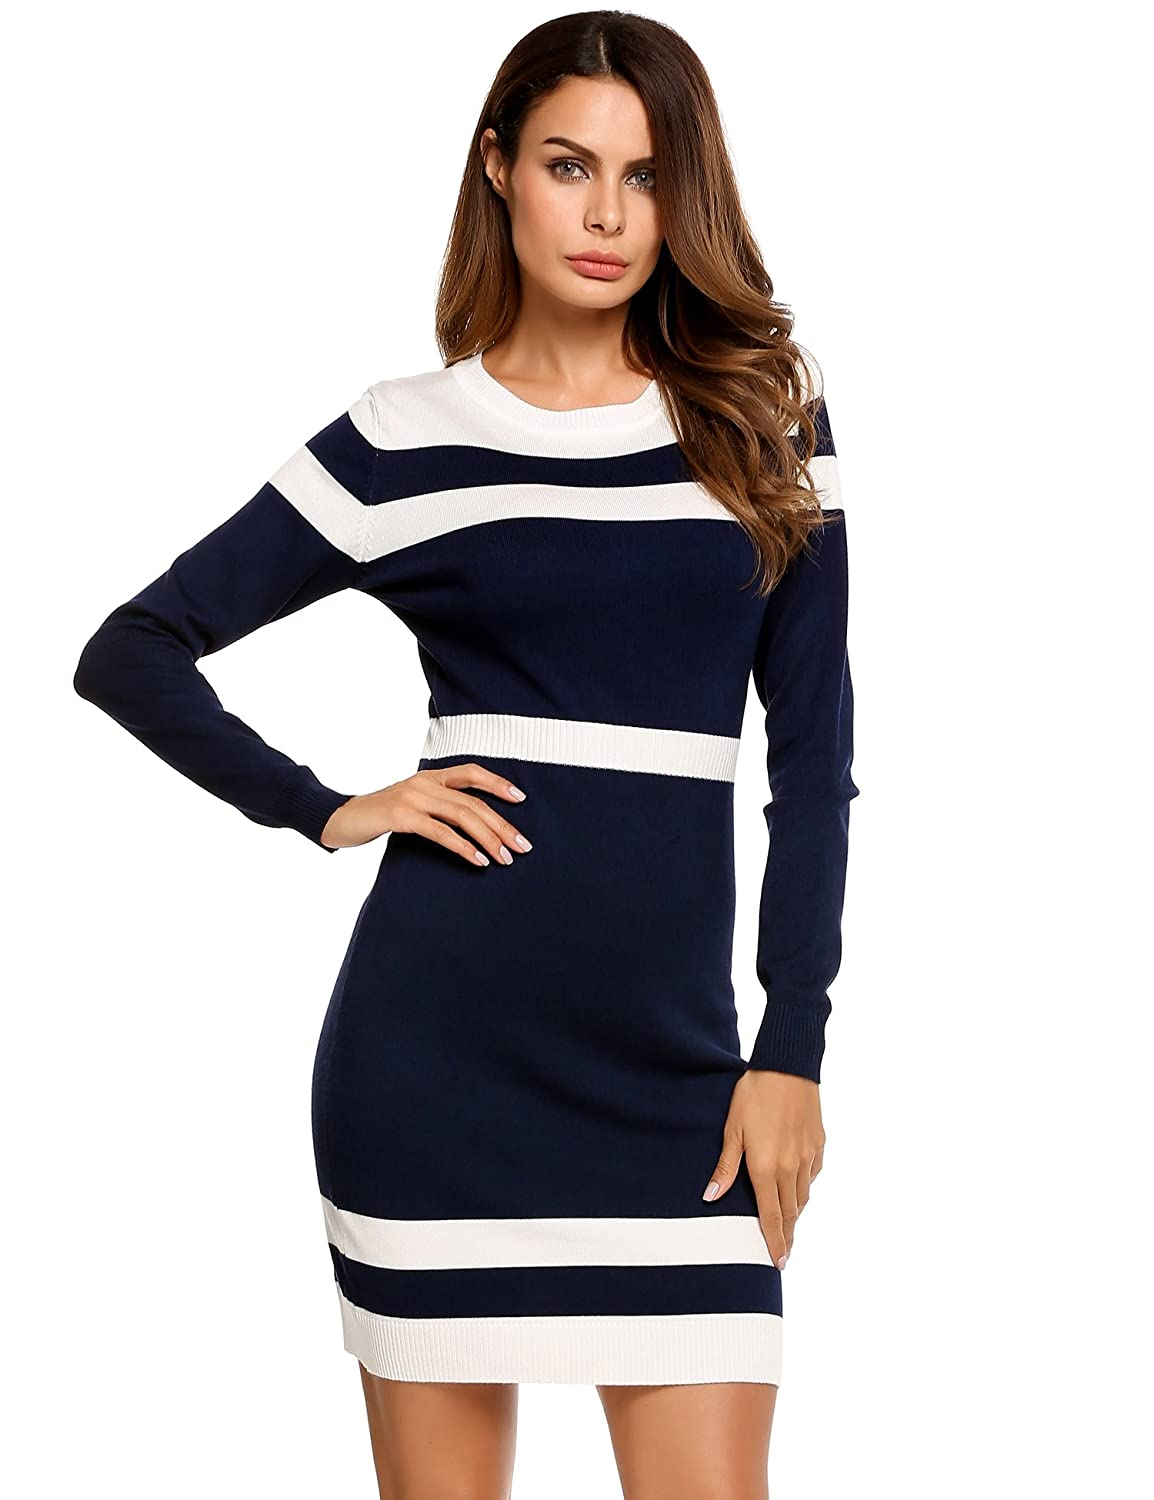 c6f4ce6dab5 Beyove Women s Colorblock Striped Long Sleeve Cotton Knit Sweater Bodycon  Dress at Amazon Women s Clothing store